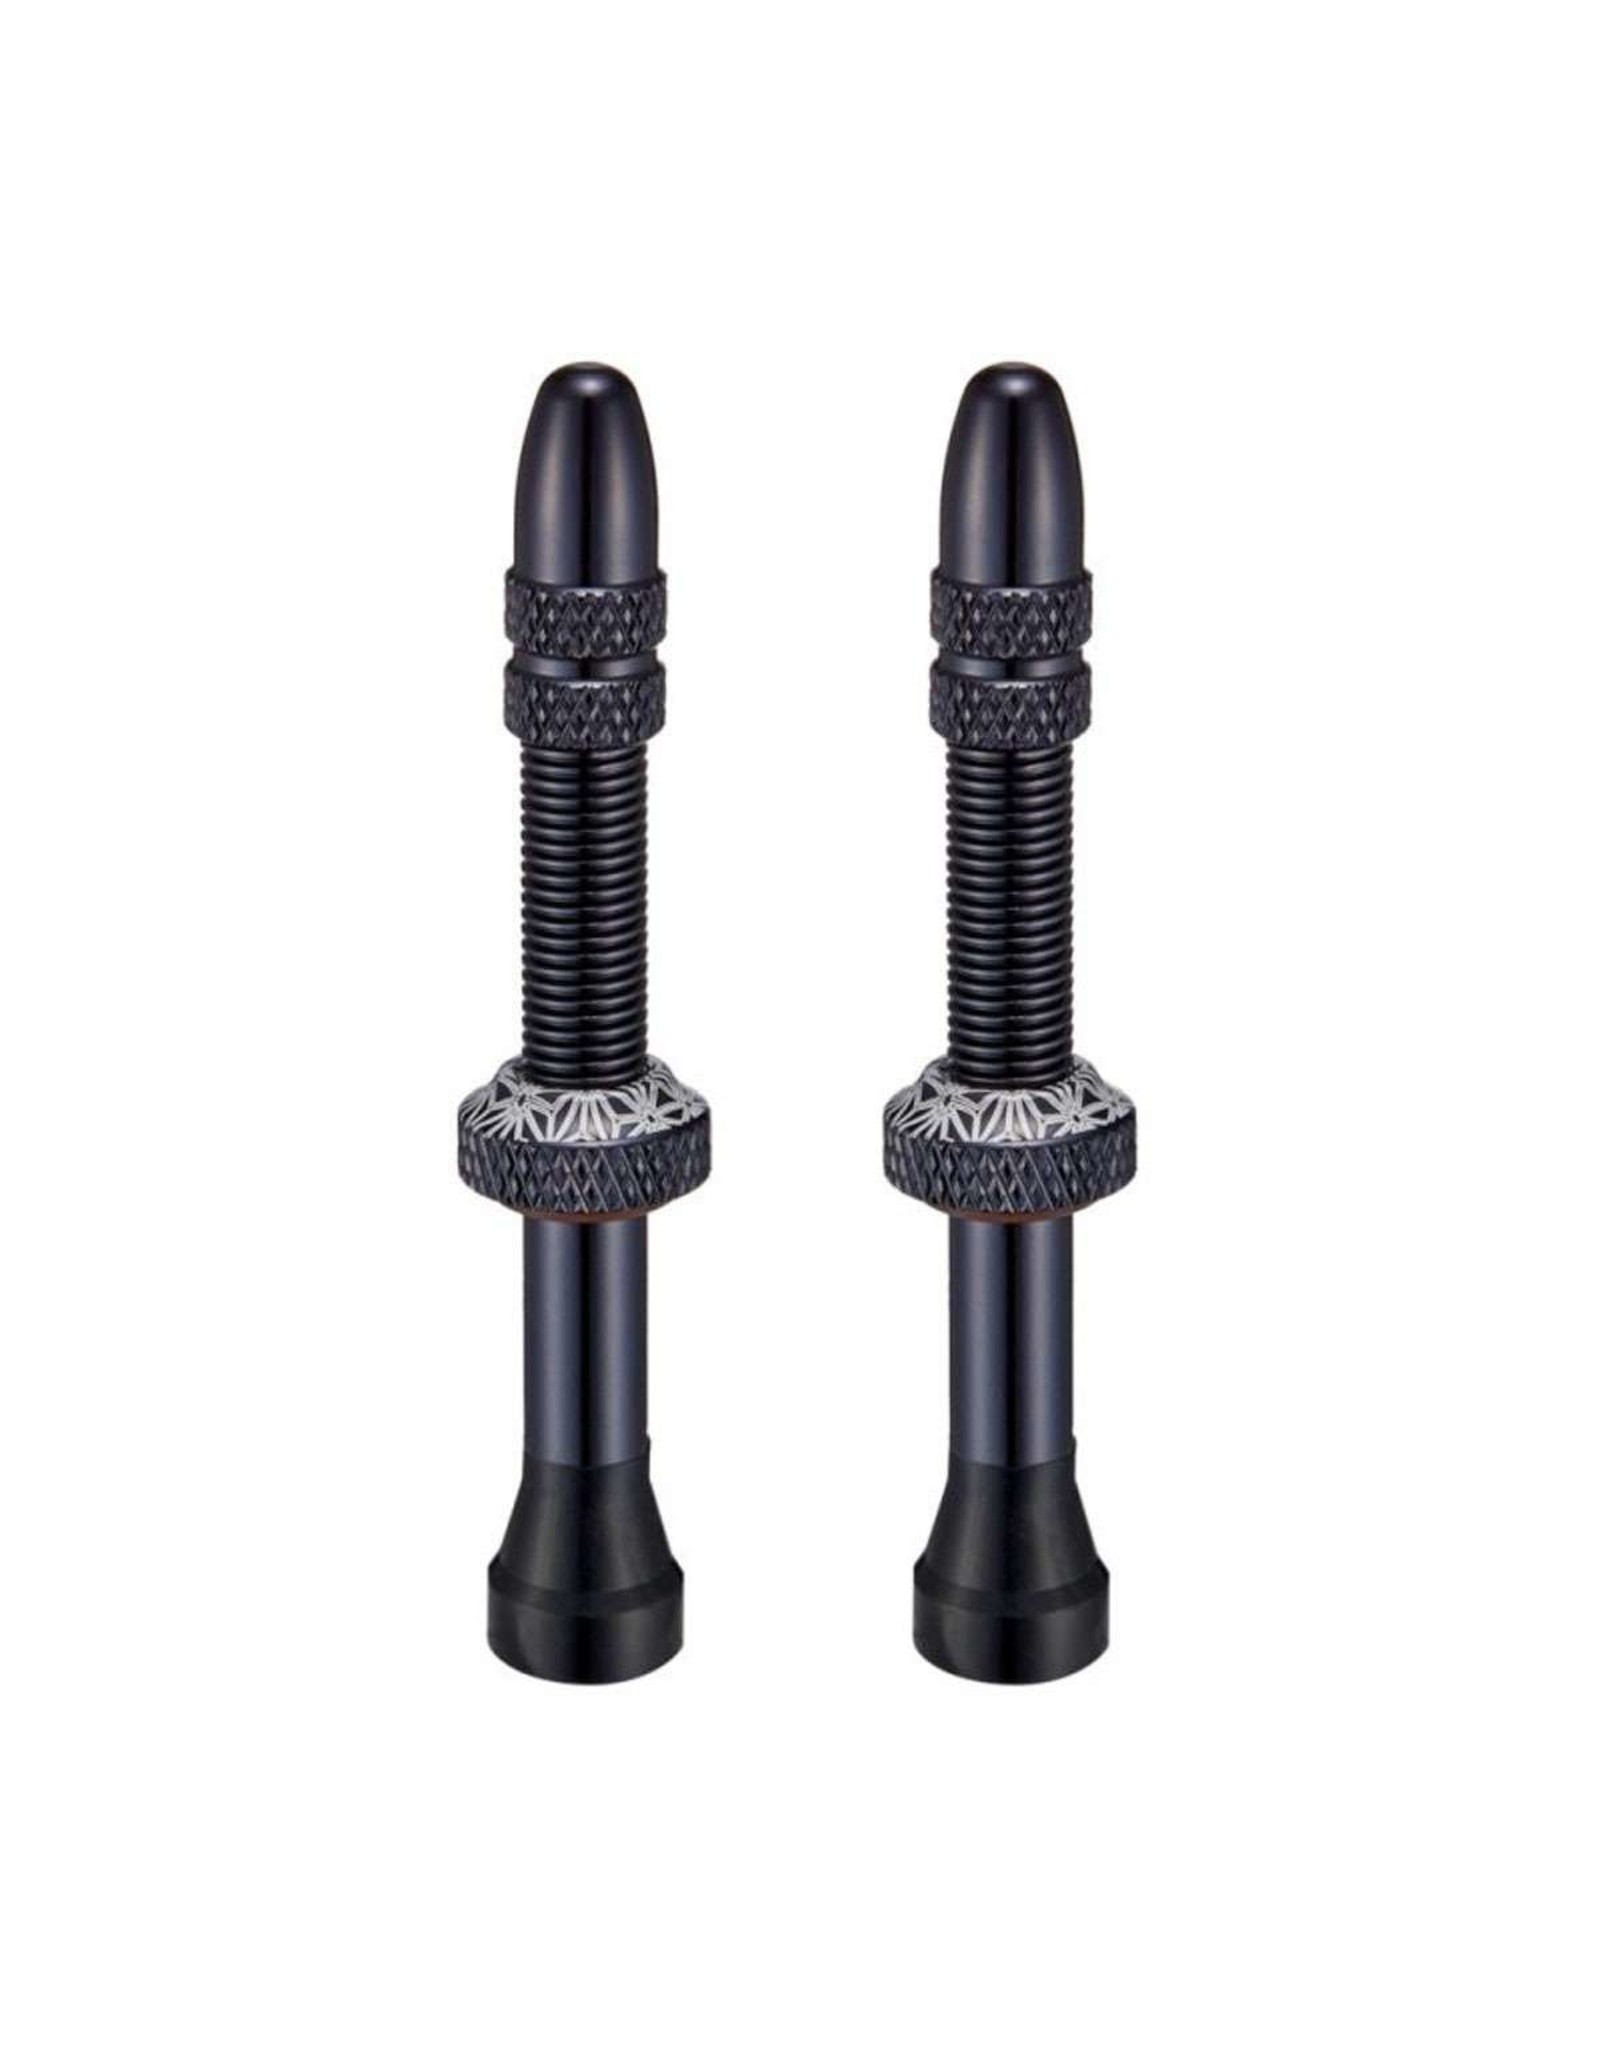 Supacaz Star Valvez Tubeless Presta Valve, 50mm, Black, Pr